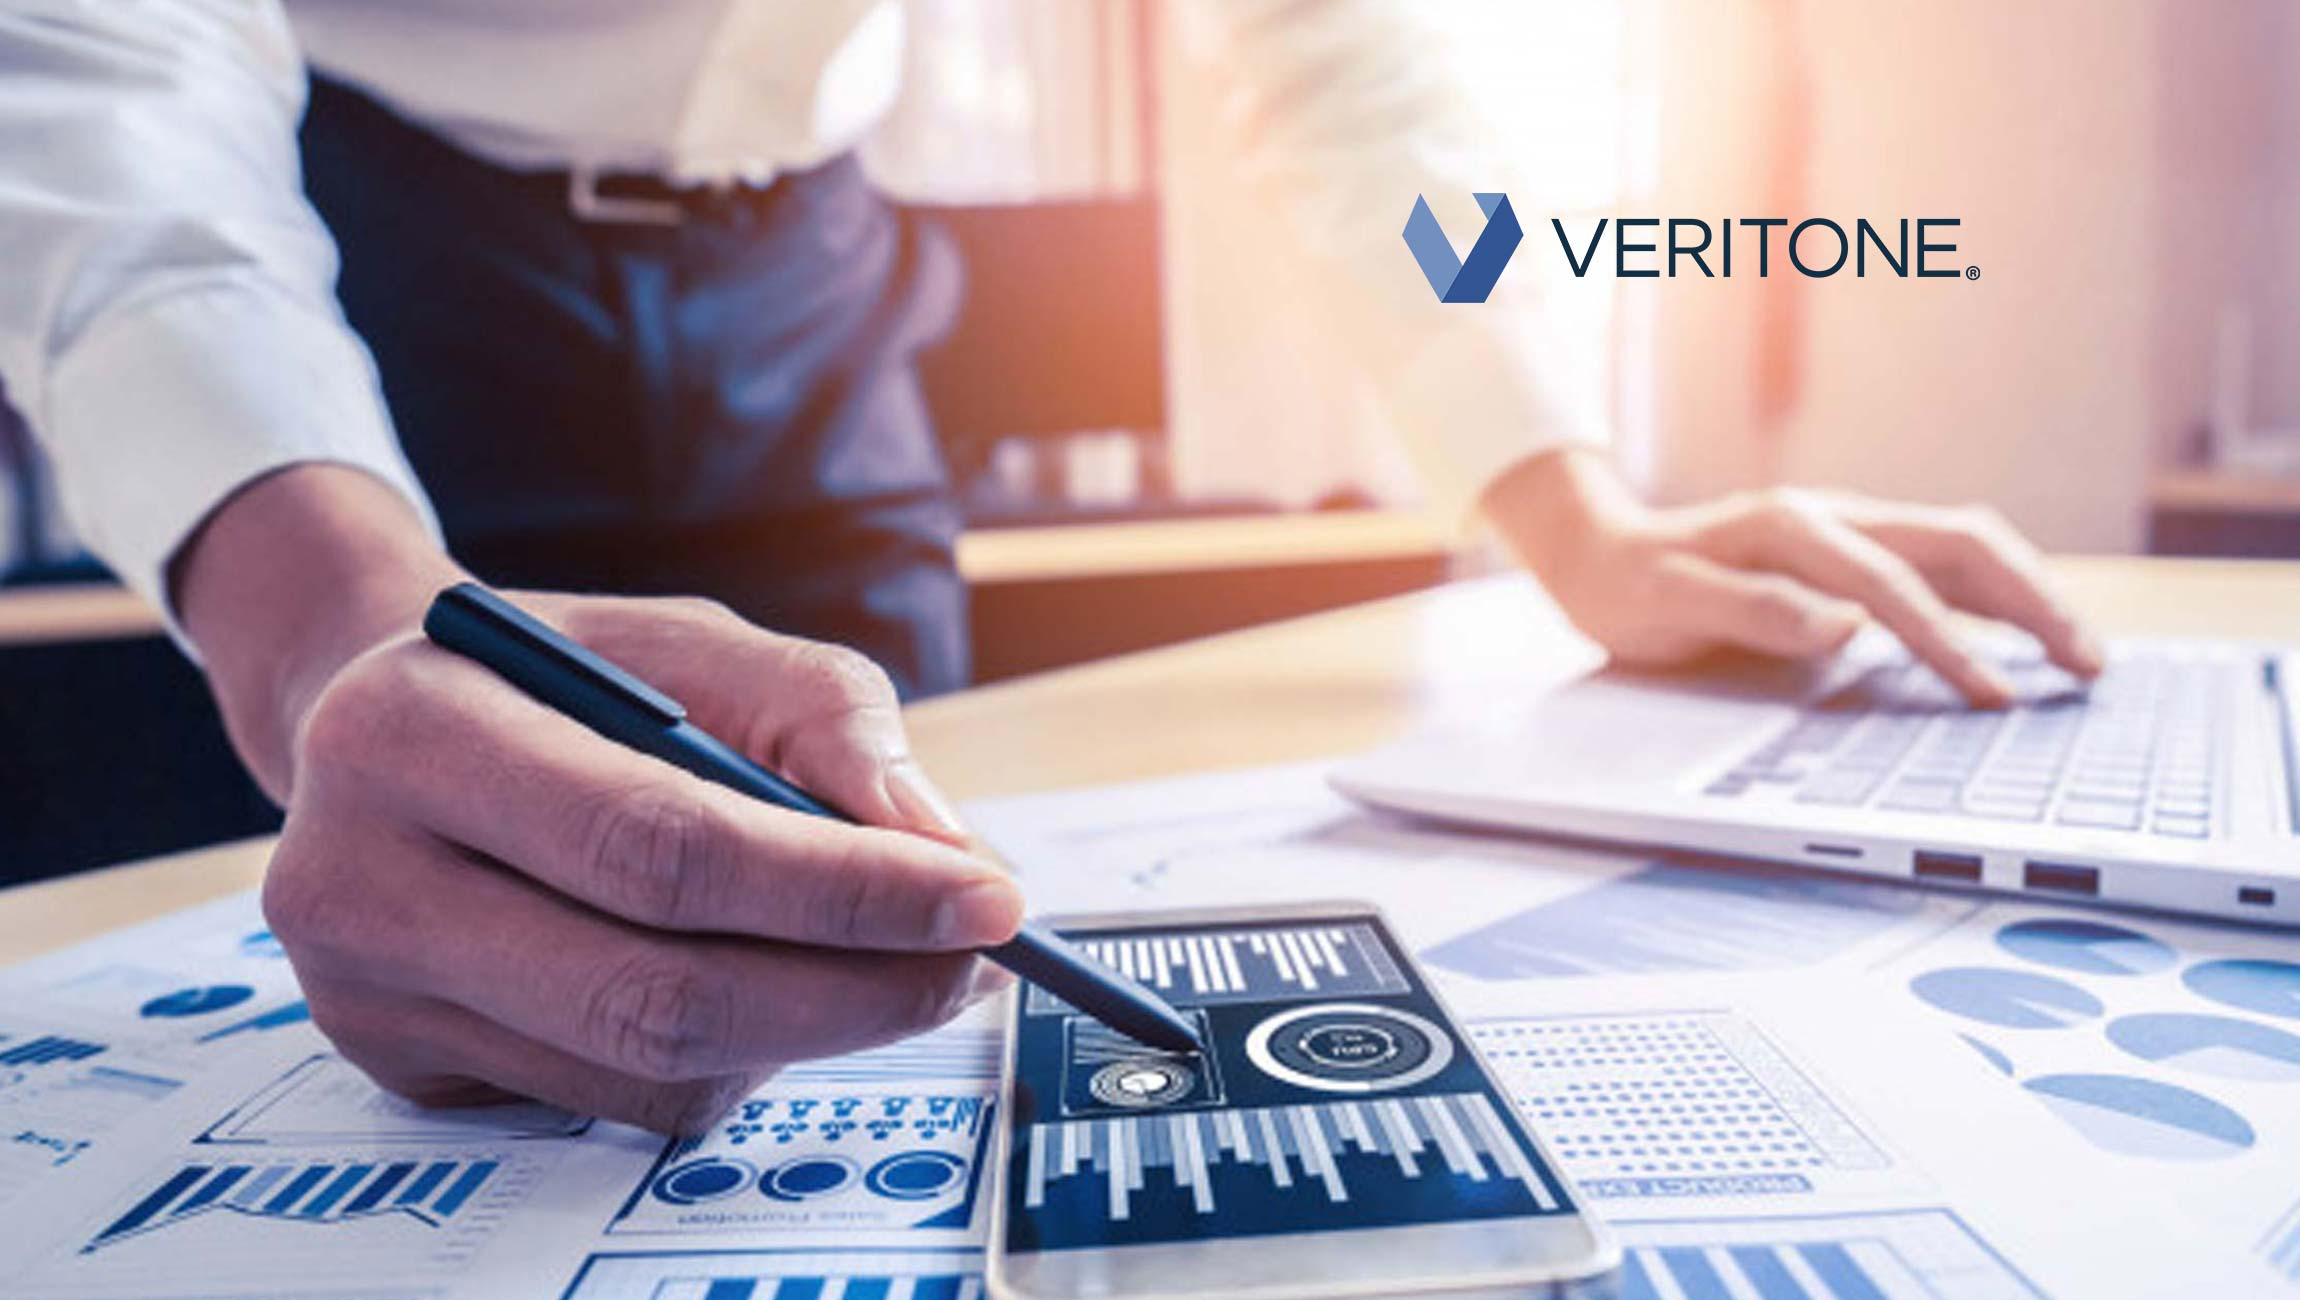 Veritone Introduces Major New Release of Its Flagship Application Veritone Discovery